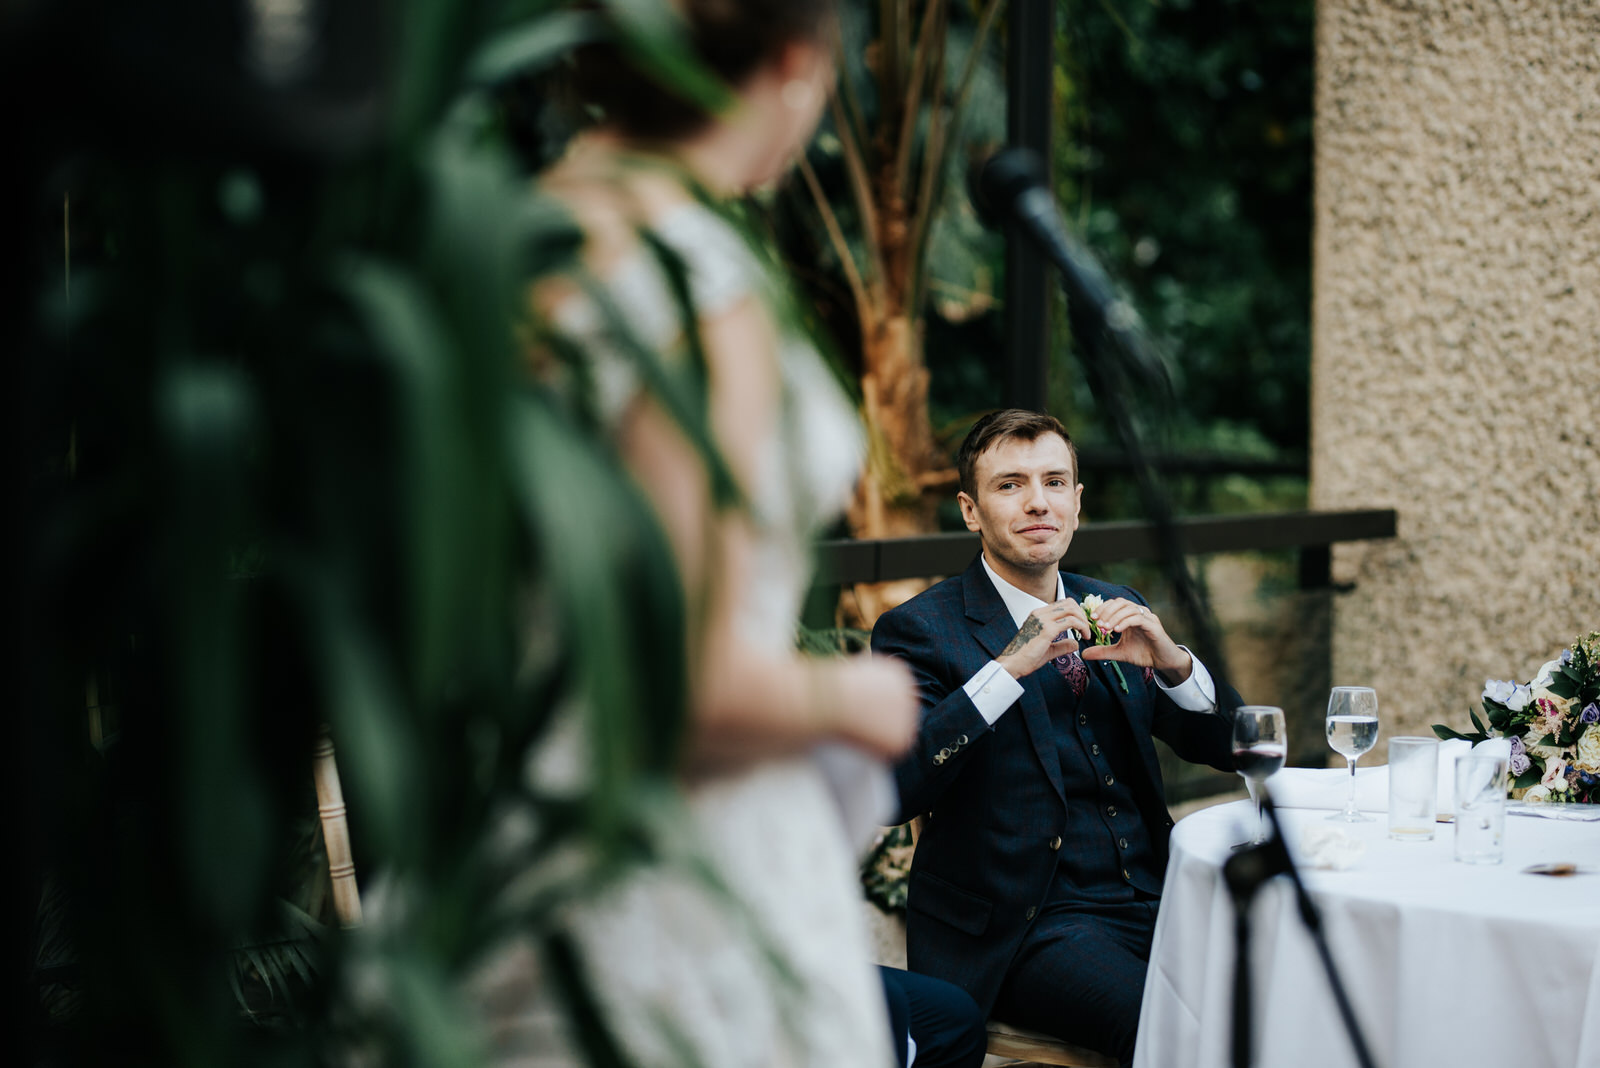 Groom looks towards bride with a heart formed with his hands aft